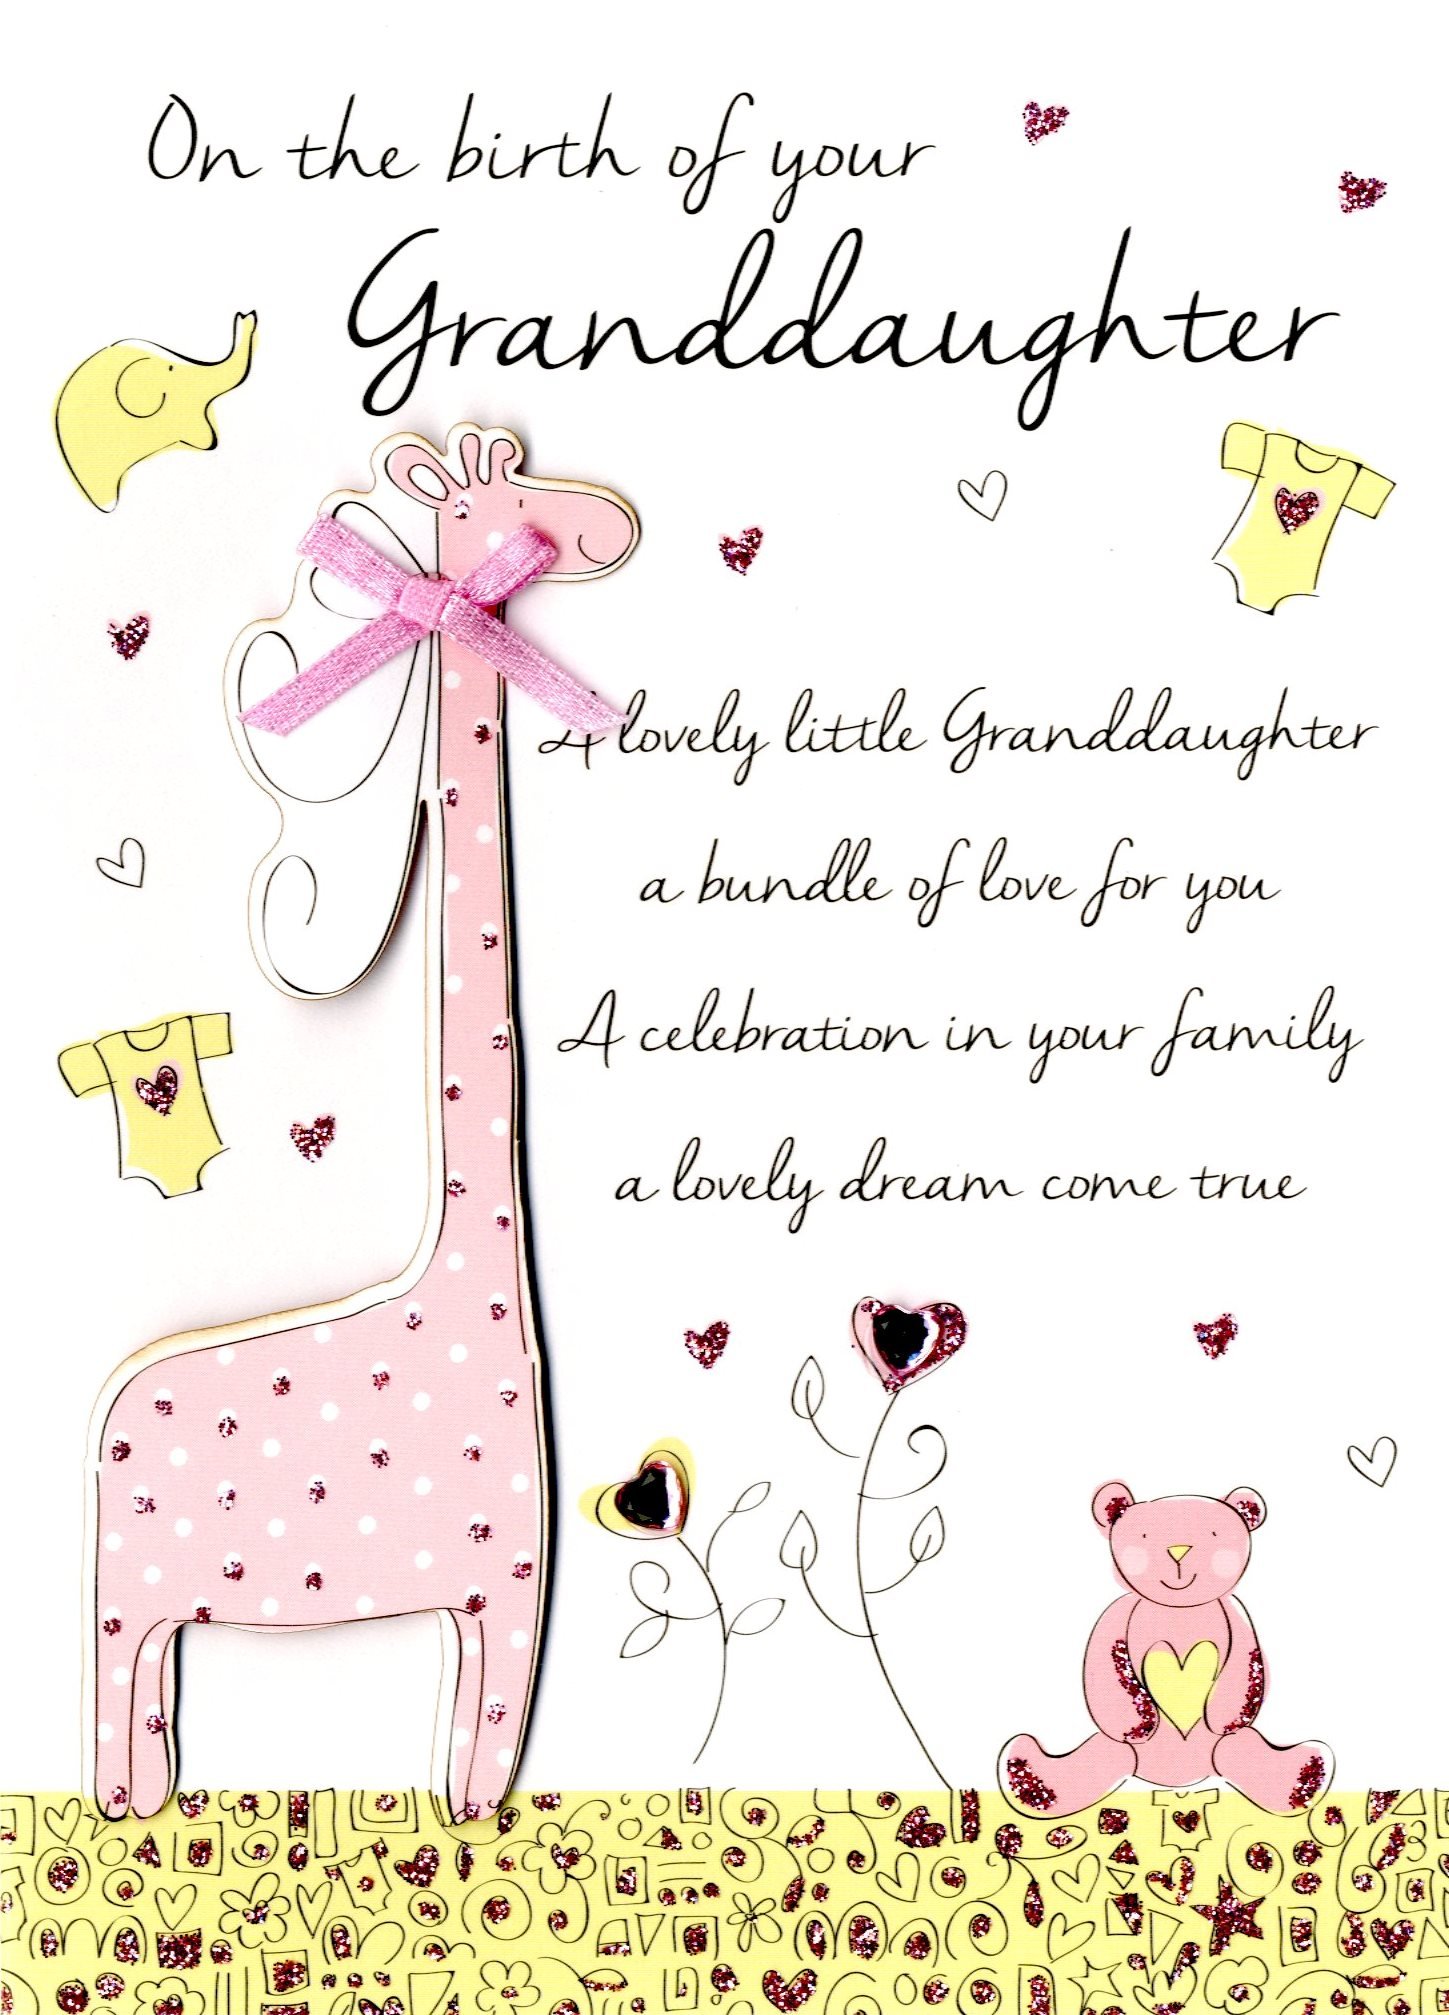 New baby granddaughter congratulations greeting card cards love new baby granddaughter congratulations greeting card m4hsunfo